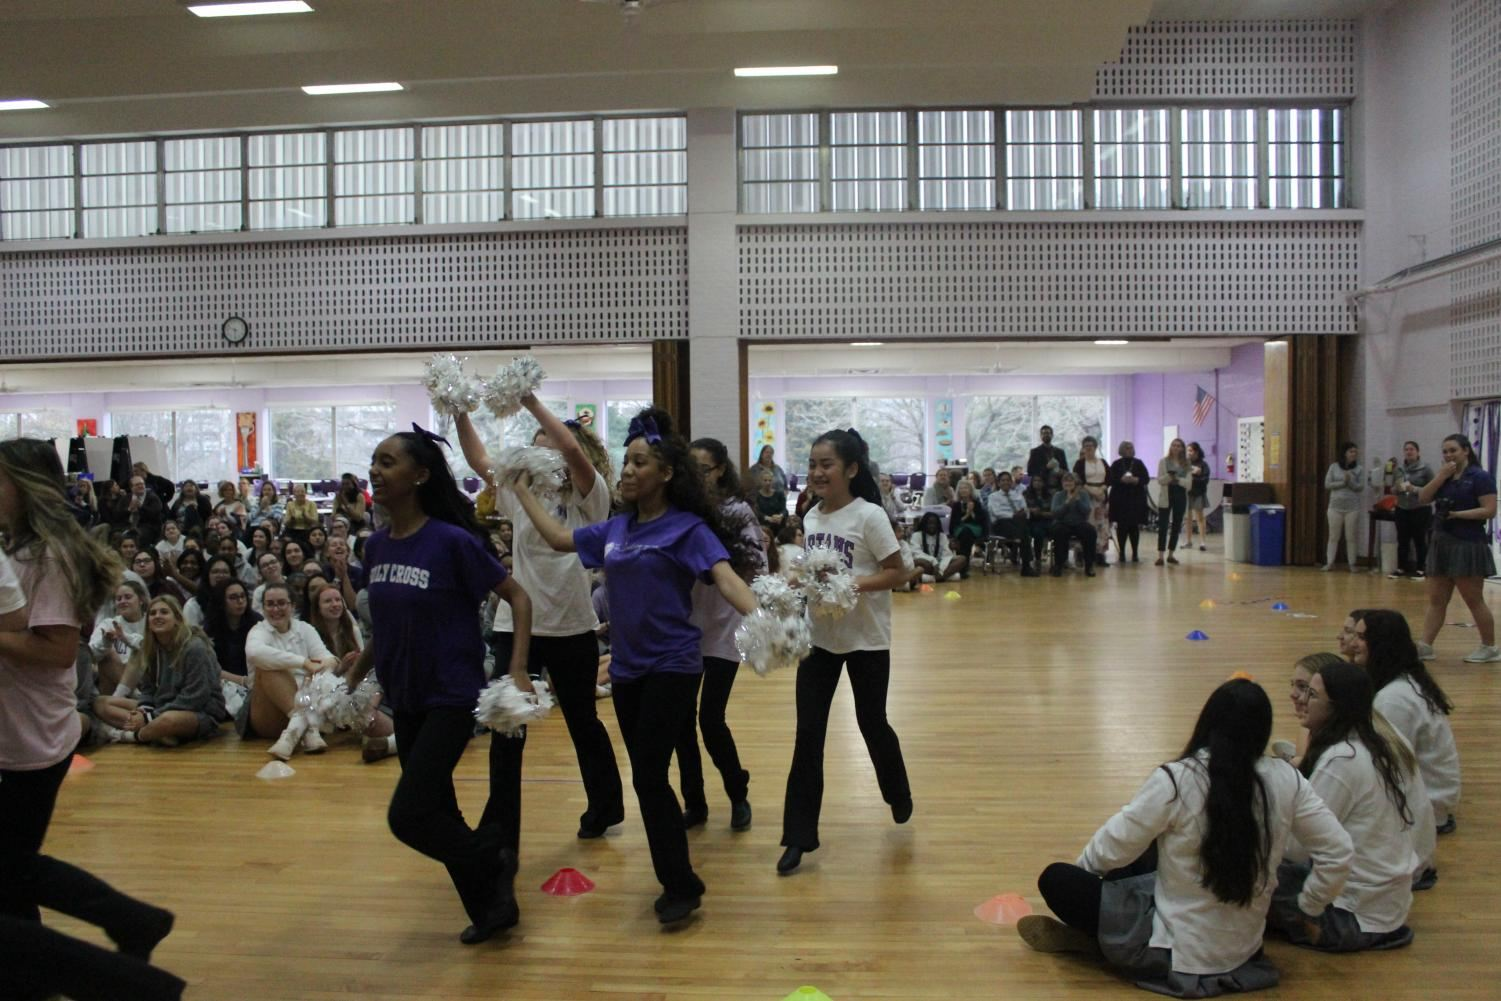 Poms team being cheered on at the pep rally.